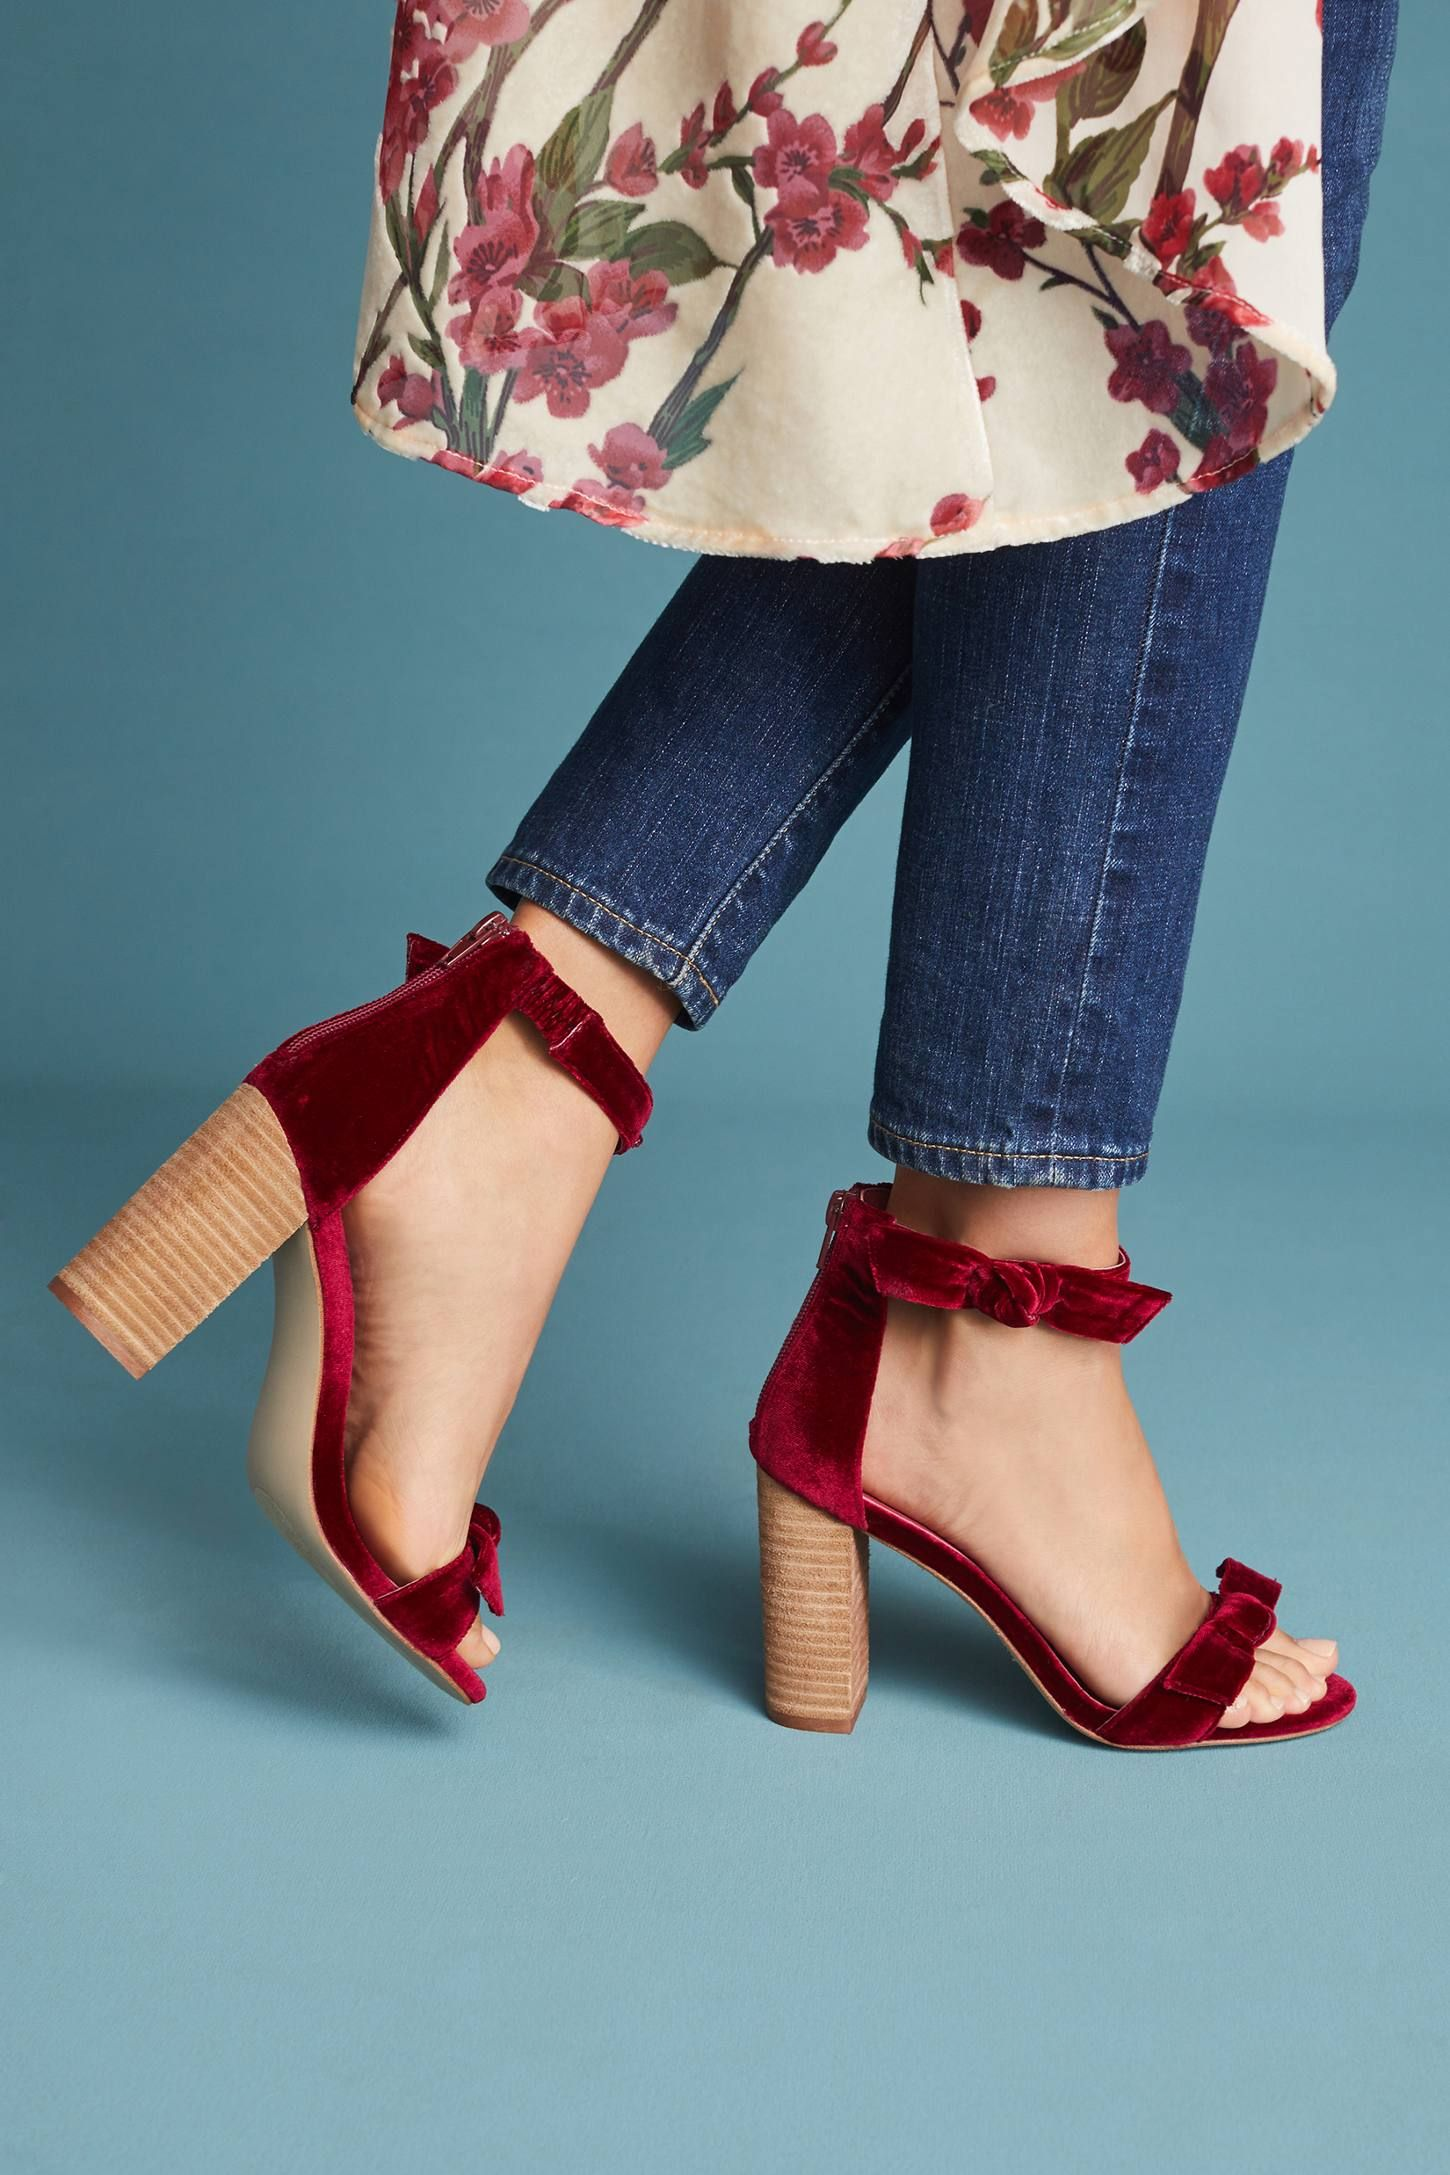 0c6430eba52f7 Shop the Jeffrey Campbell Velvet Heeled Sandals and more Anthropologie at  Anthropologie today. Read customer reviews, discover product details and  more.